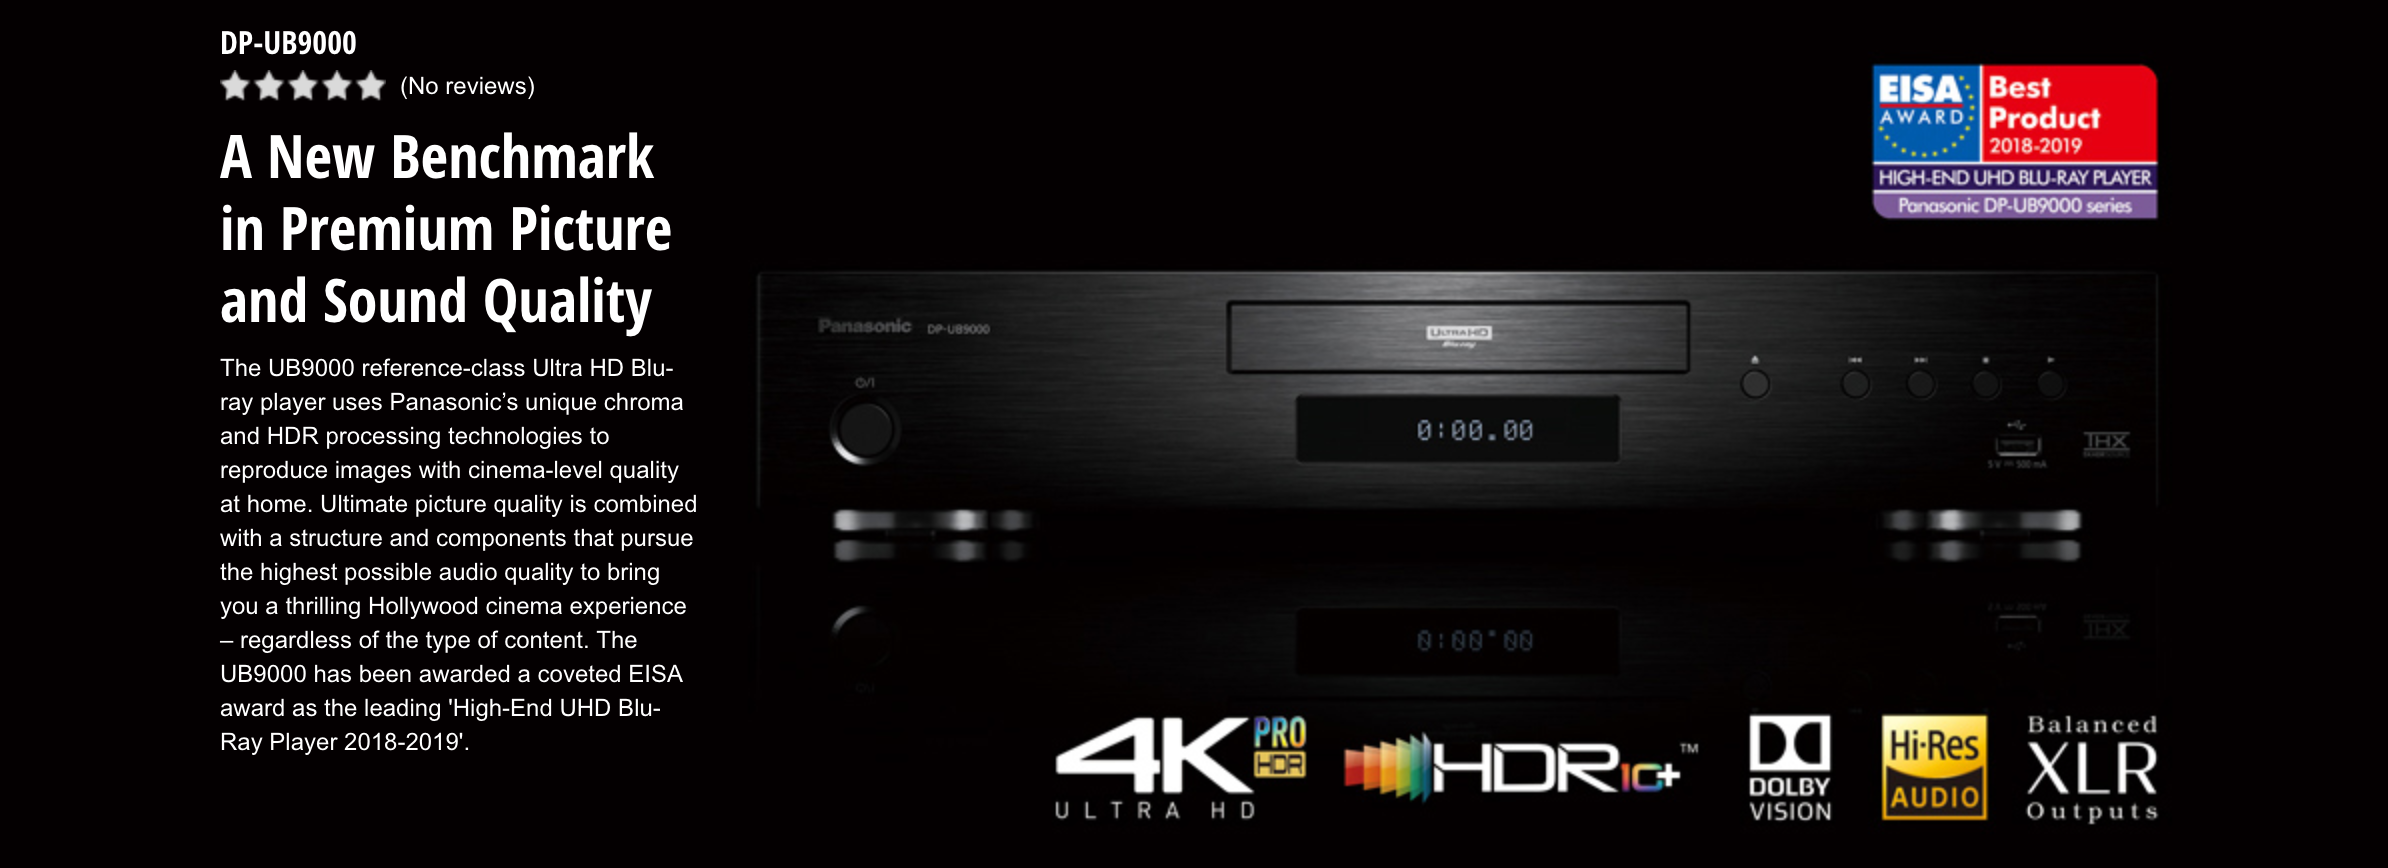 Panasonic Dp Ub9000 Blu Ray Player Melbourne Hi Fi